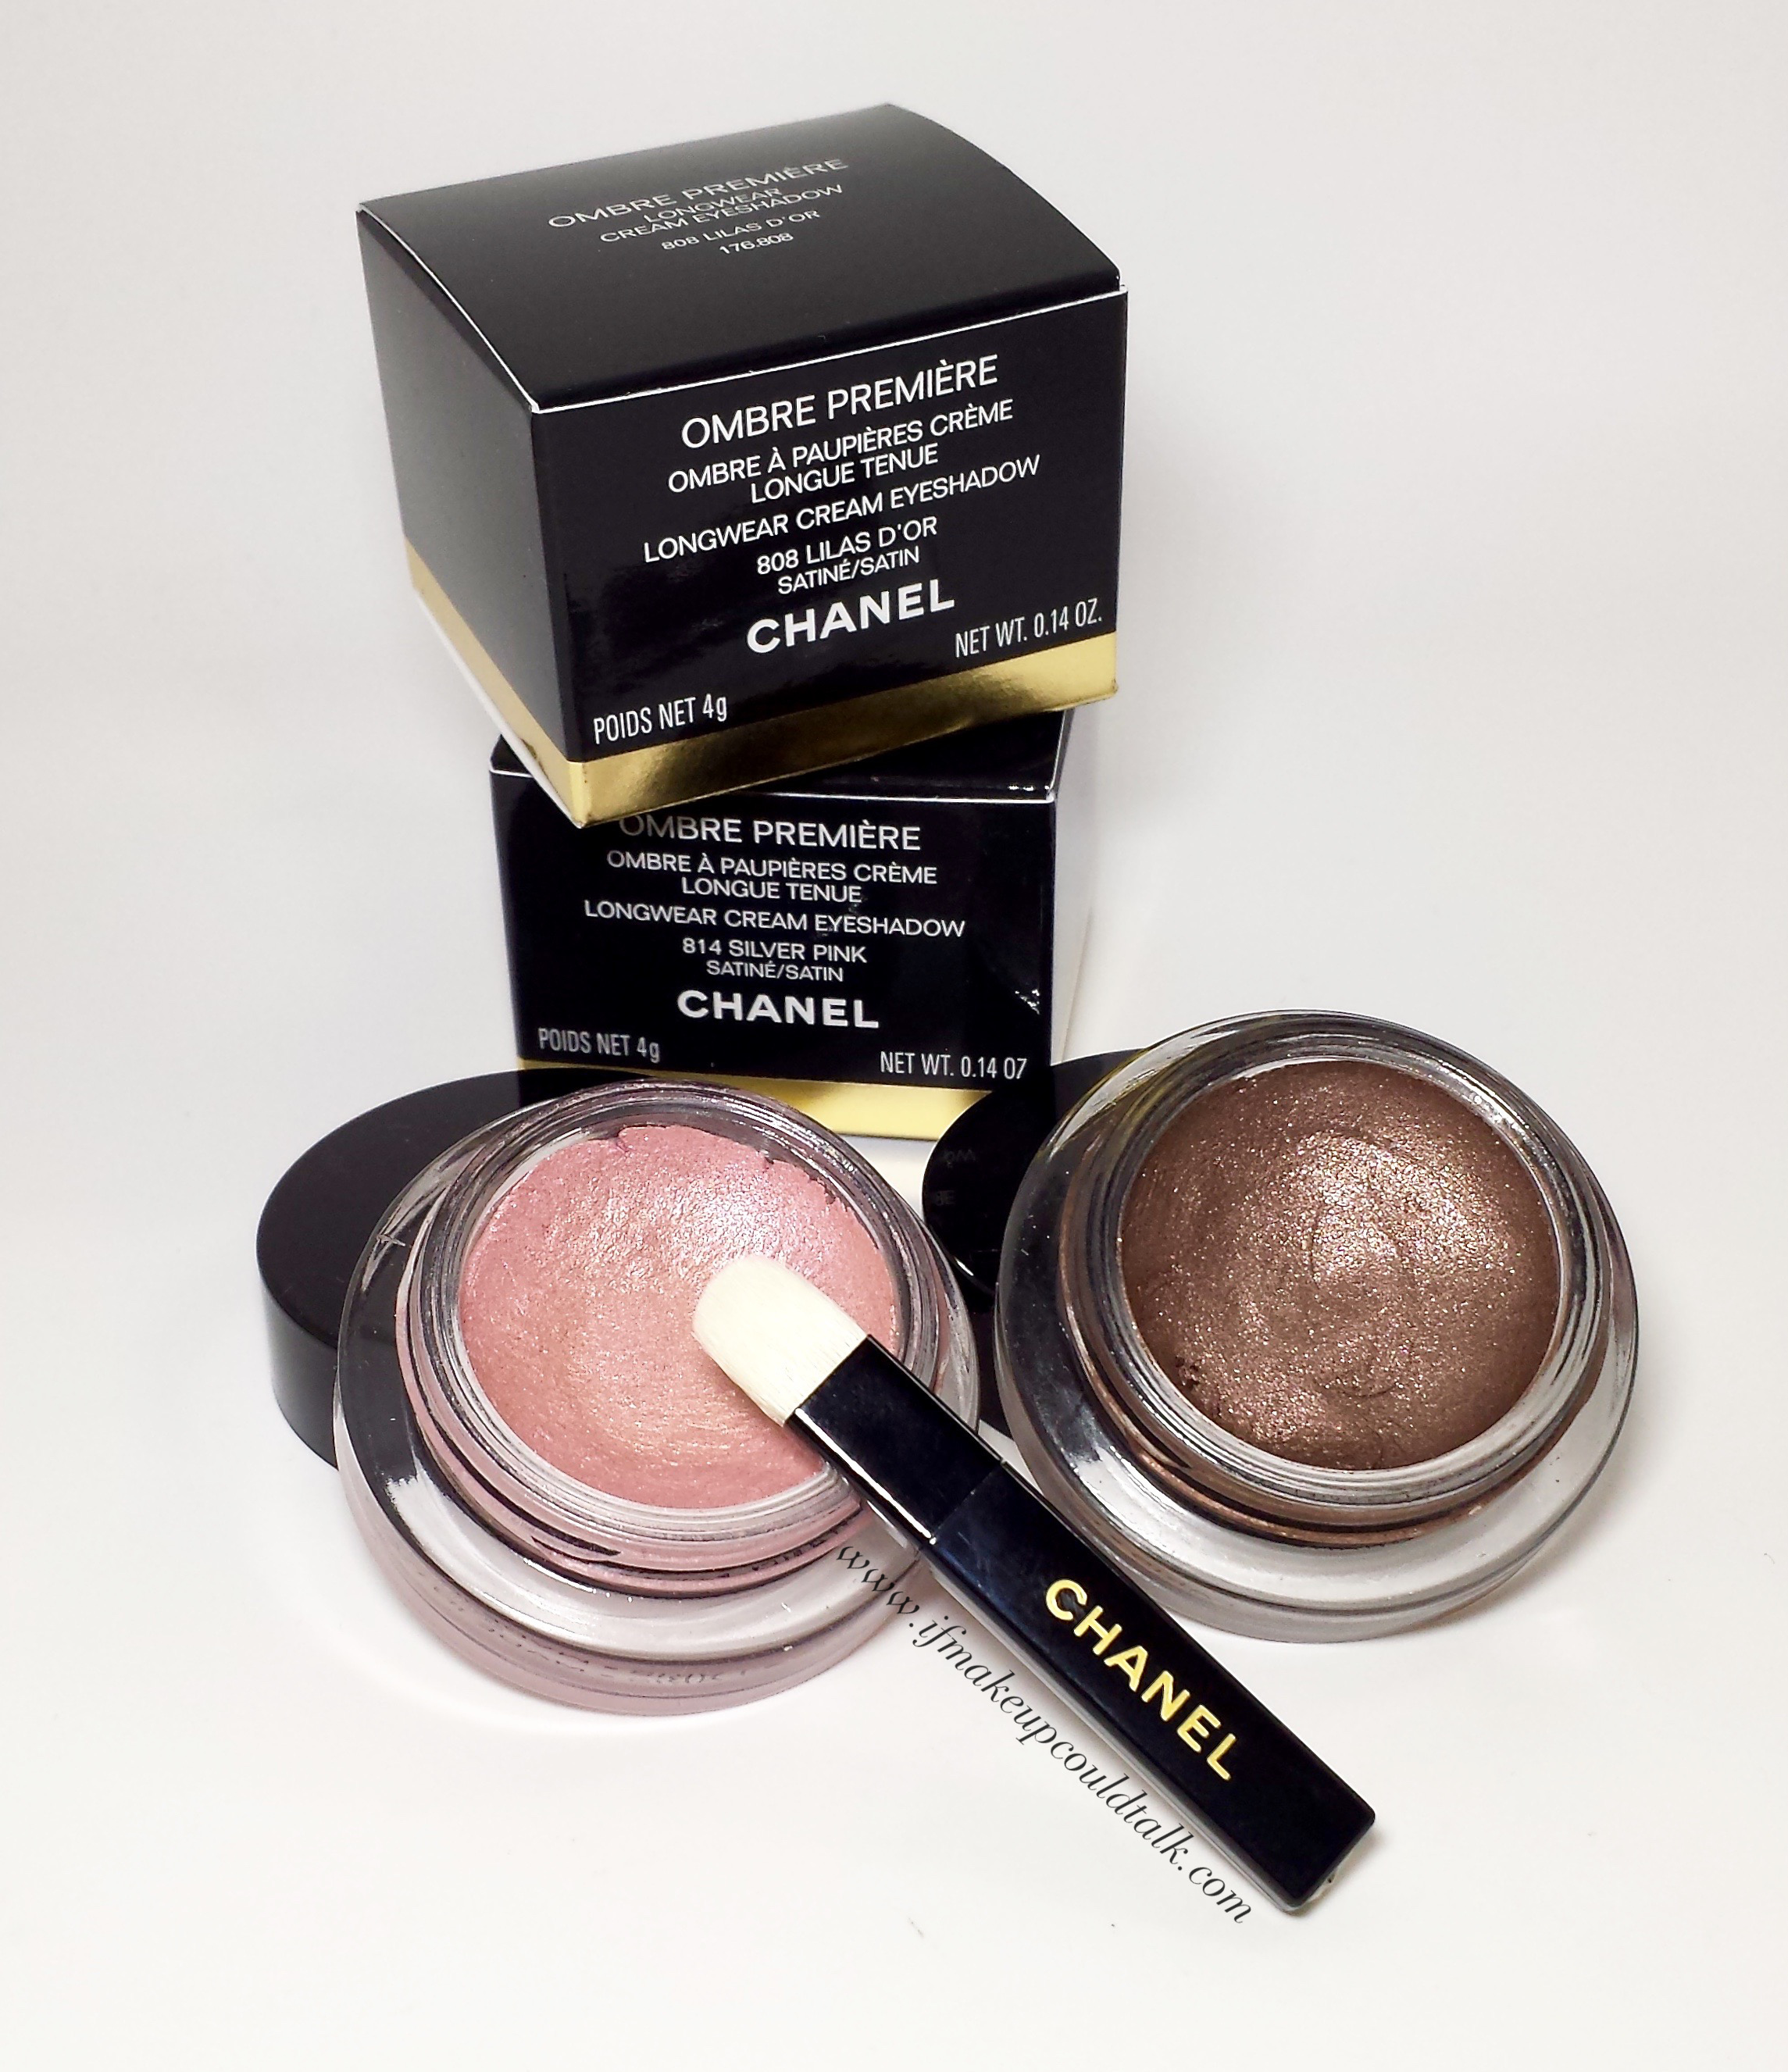 Chanel 808 Lilas D'Or and 814 Silver Pink.